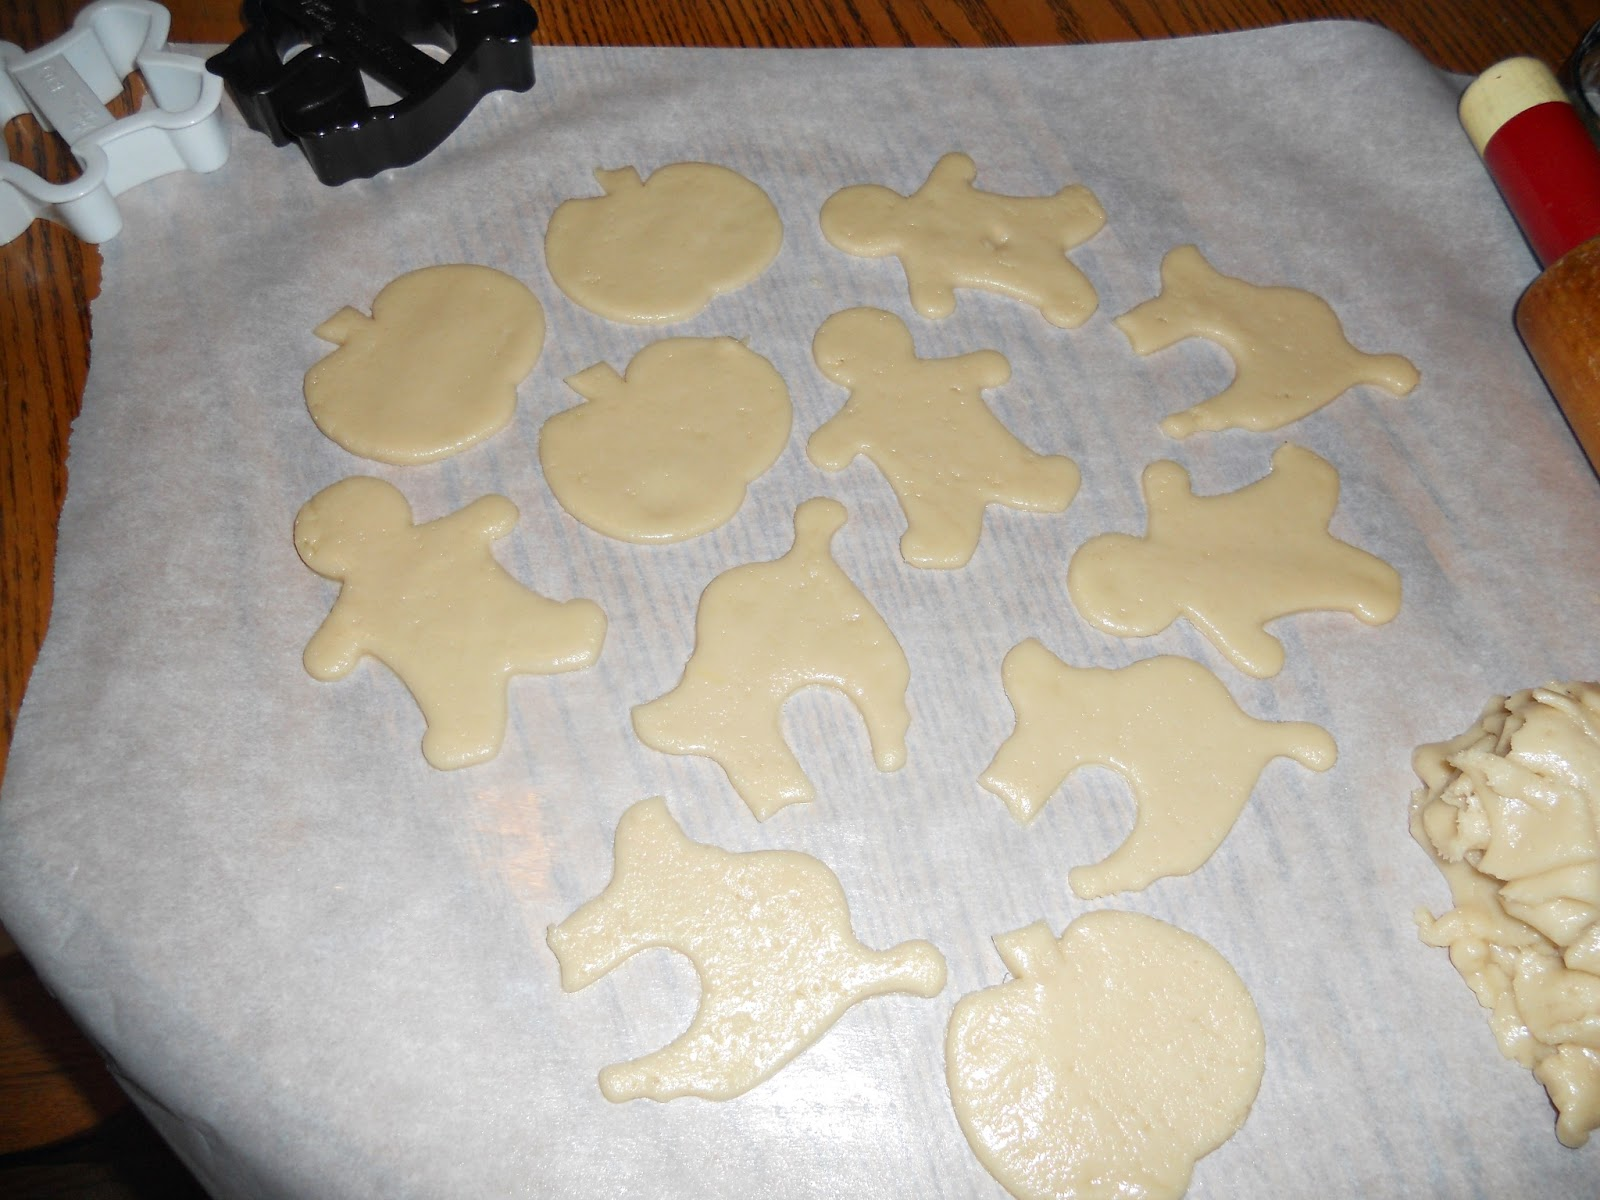 vegan halloween sugar cookies #sundaysupper - hezzi-d's books and cooks